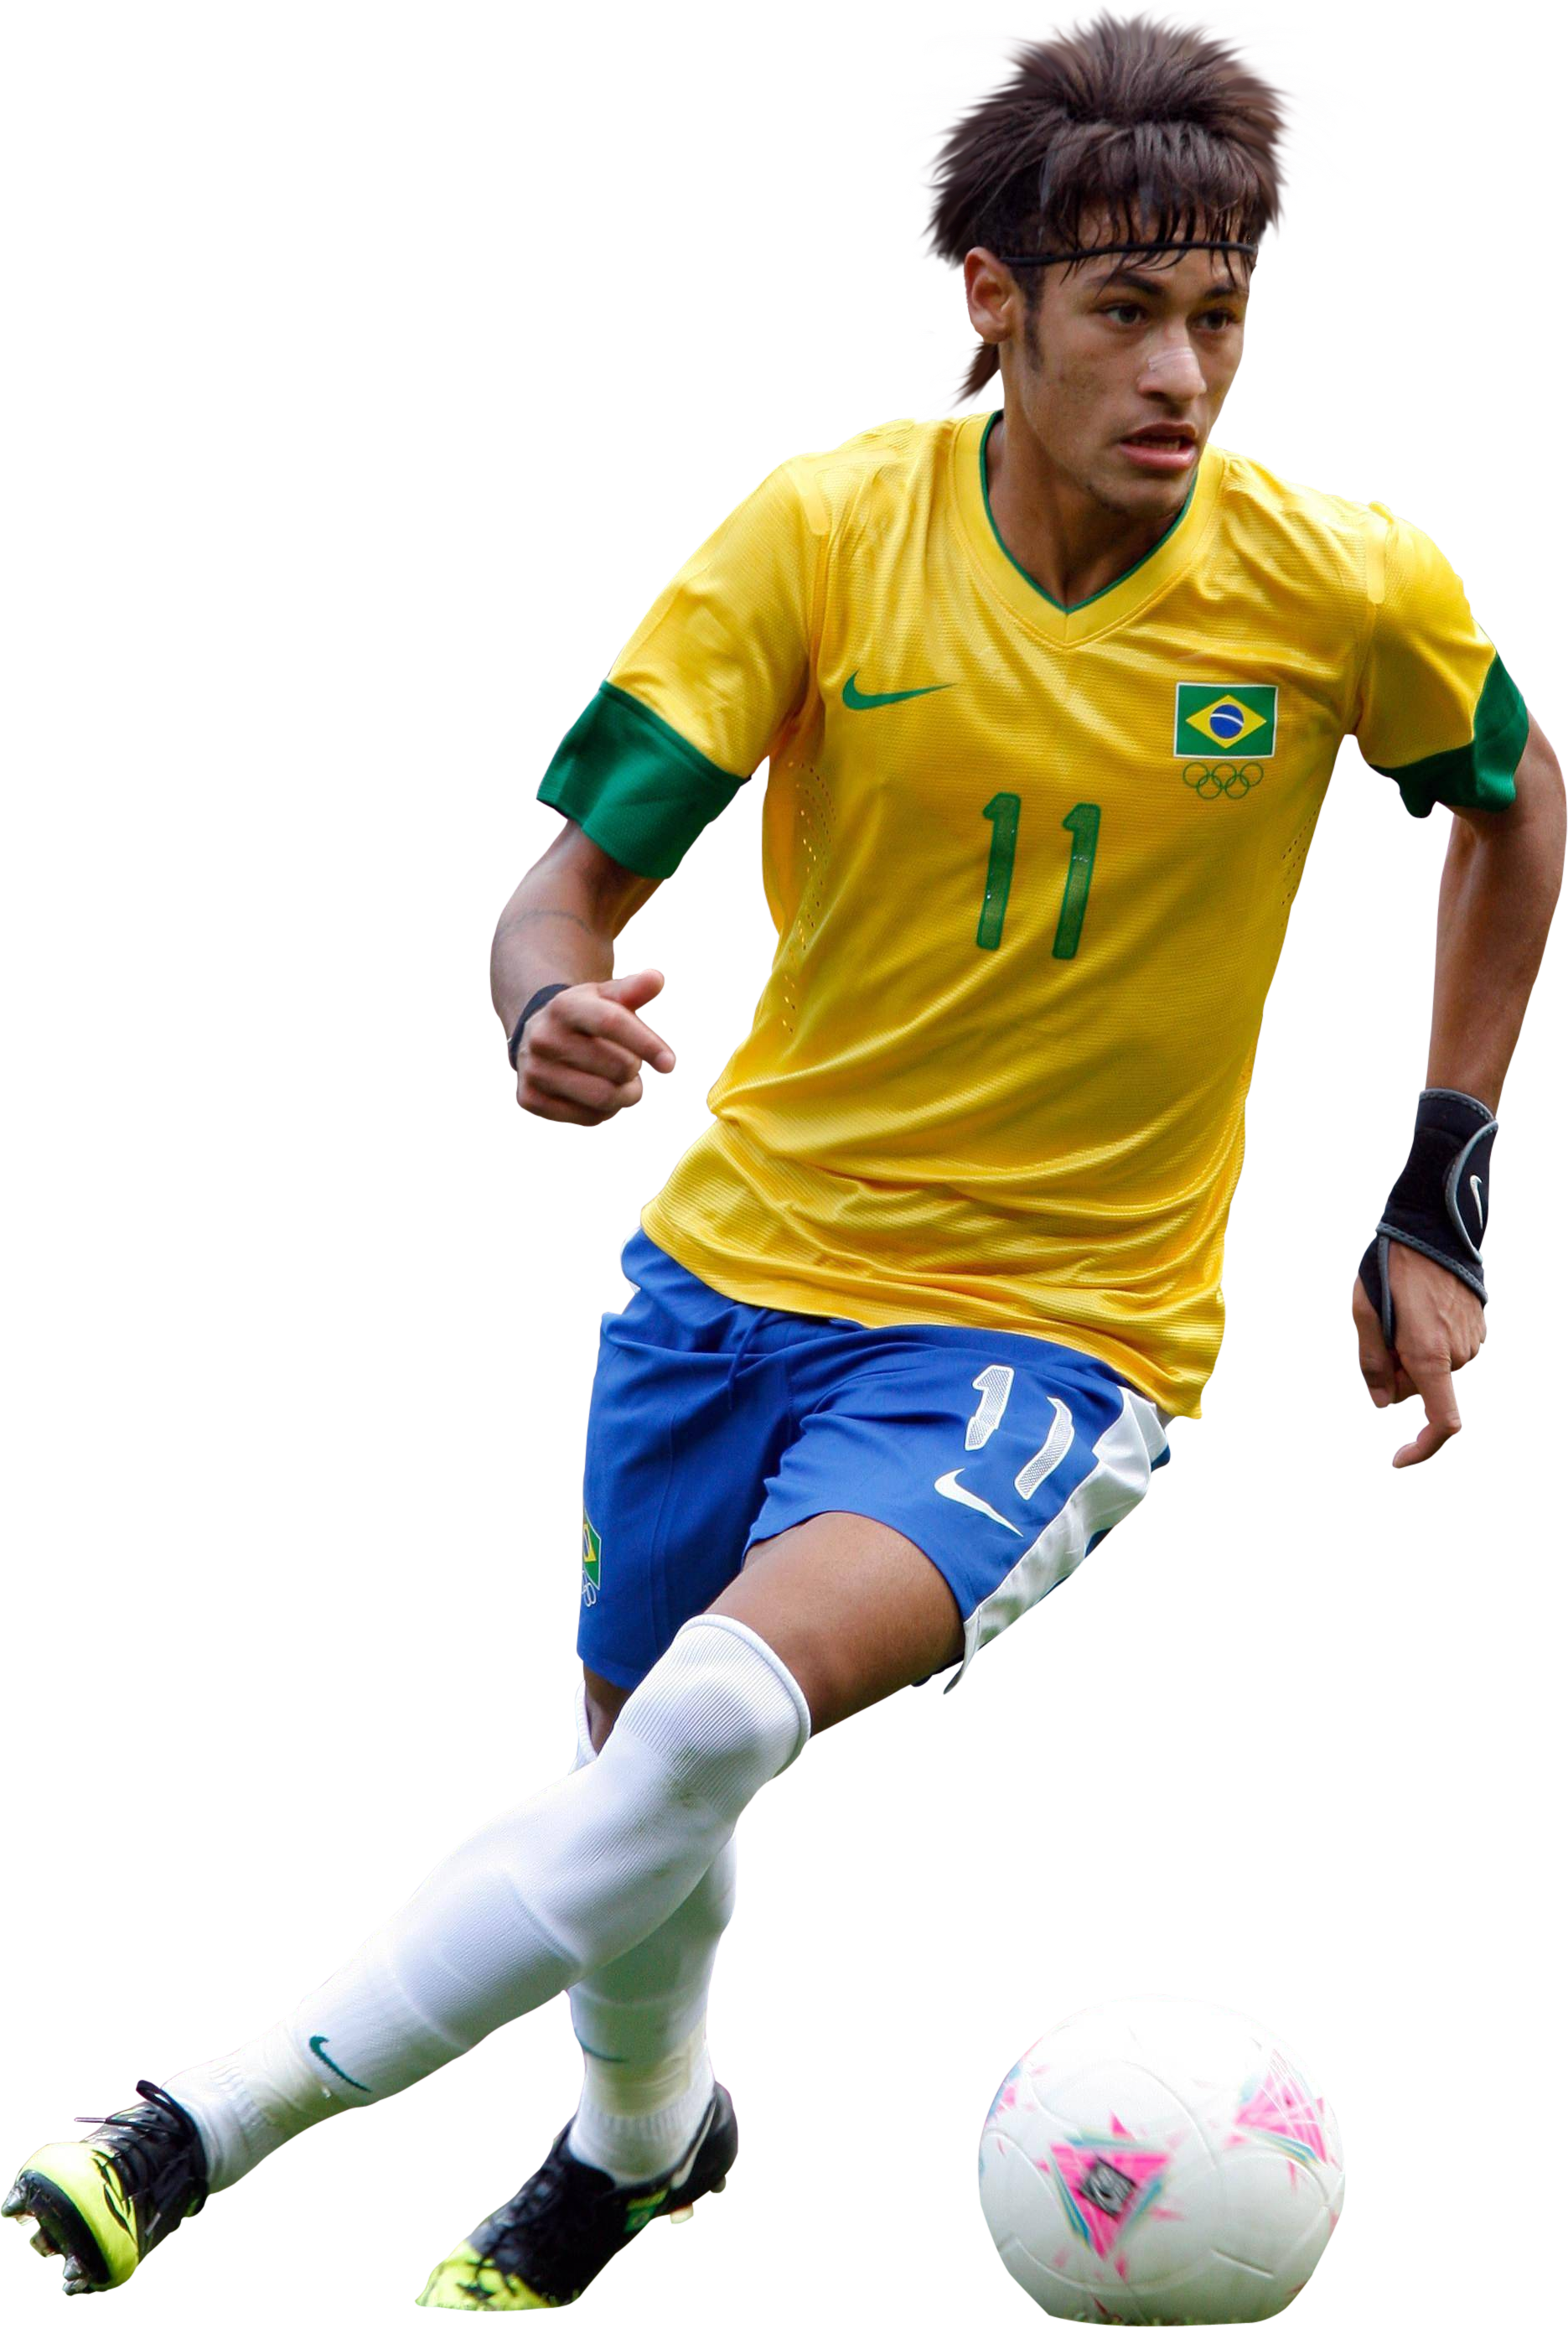 Neymar Athlete Yellow Png image #44973